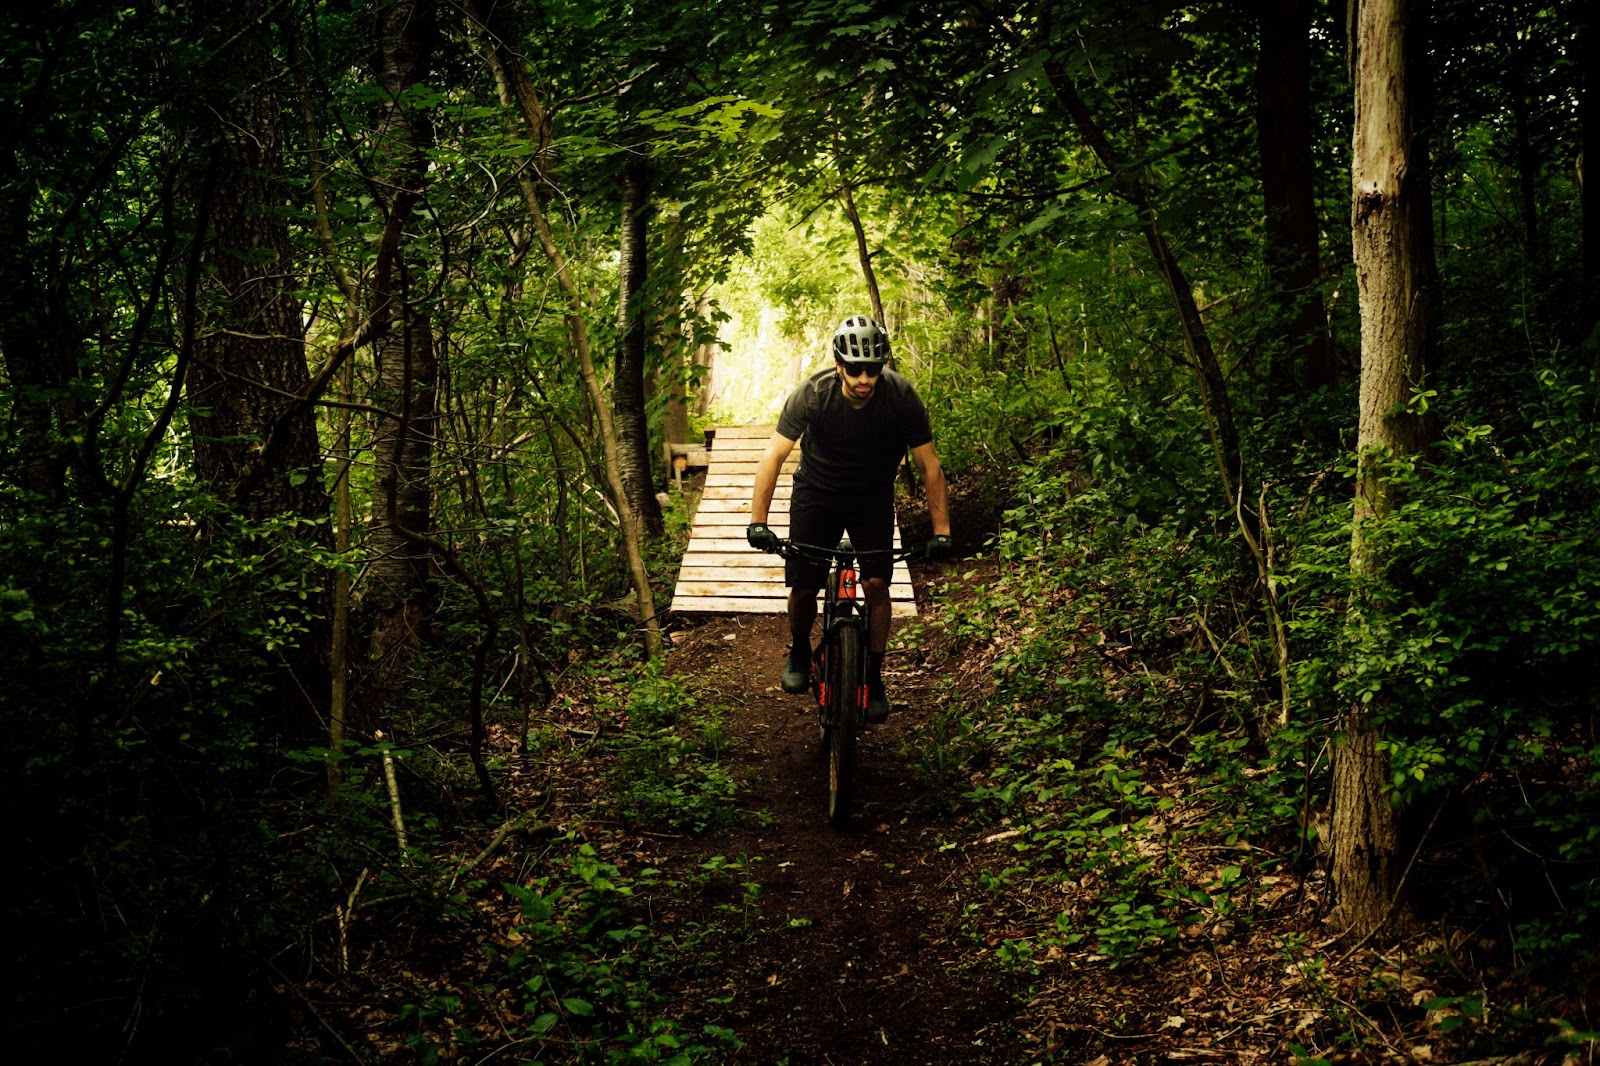 biker riding skyrunning girl naia tower-pierce djswagzilla woods trails running runners ways to stay safer on the trails DITCH THE HEADPHONES. 8 Ways to Stay Safer While Running